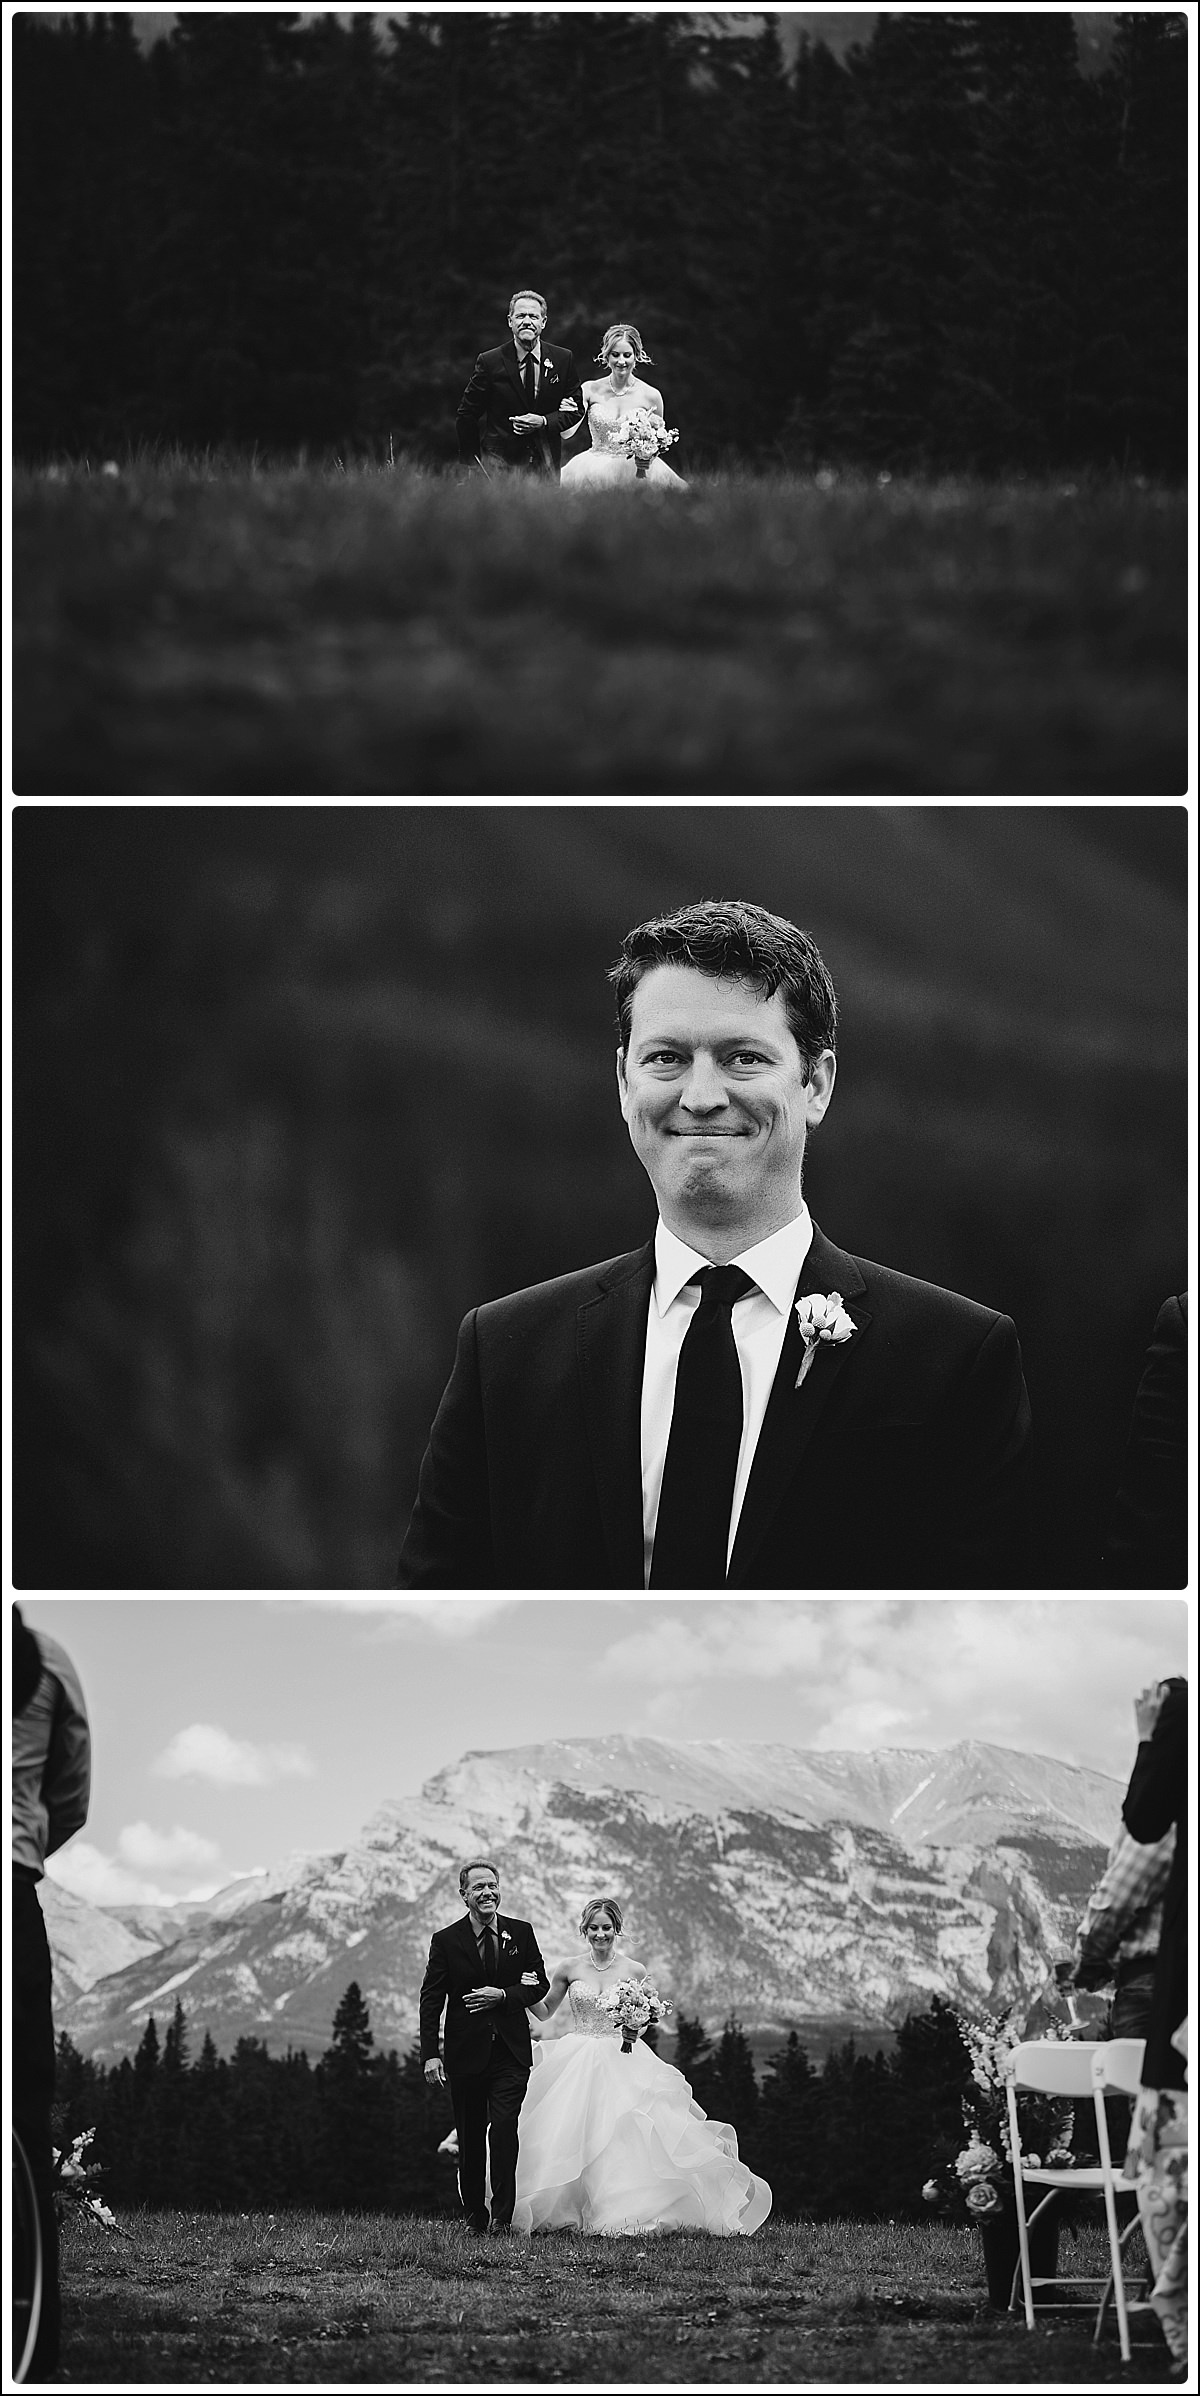 Canmore_Wedding_Photographers_Dana_Pat_0027_WEB.jpg